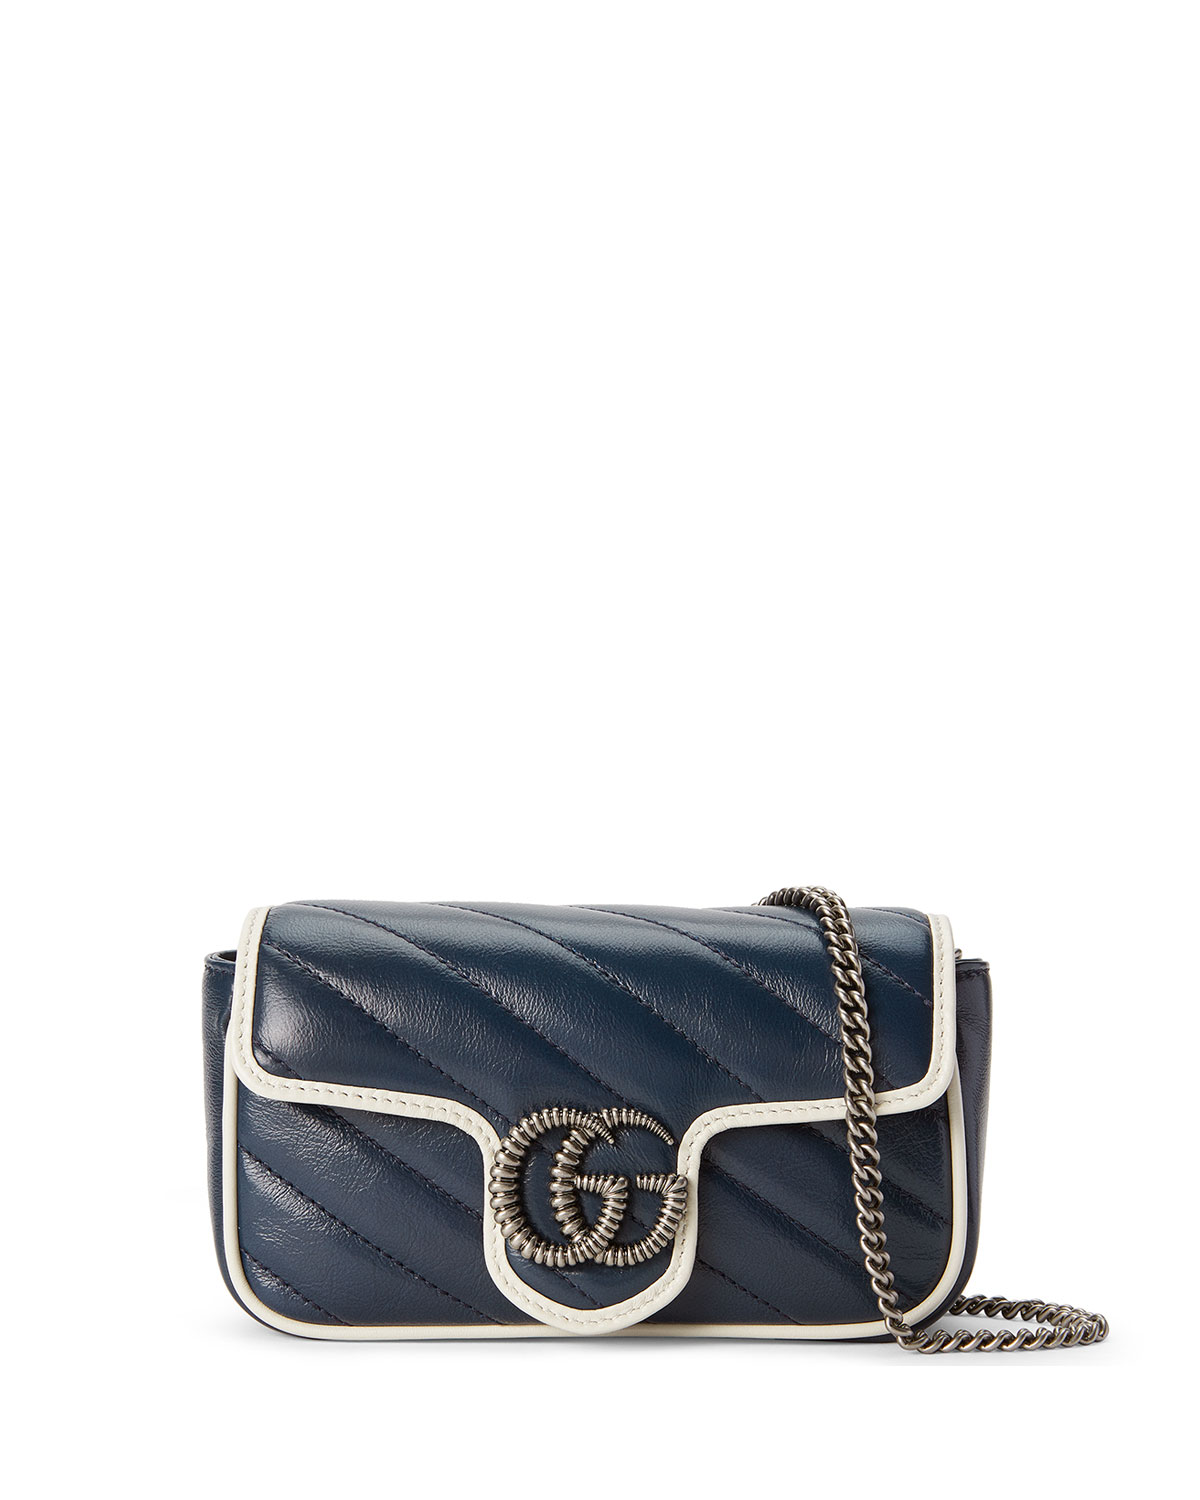 Gucci Crossbody GG MARMONT TORCHON SUPER MINI CROSSBODY BAG - SILVER HARDWARE